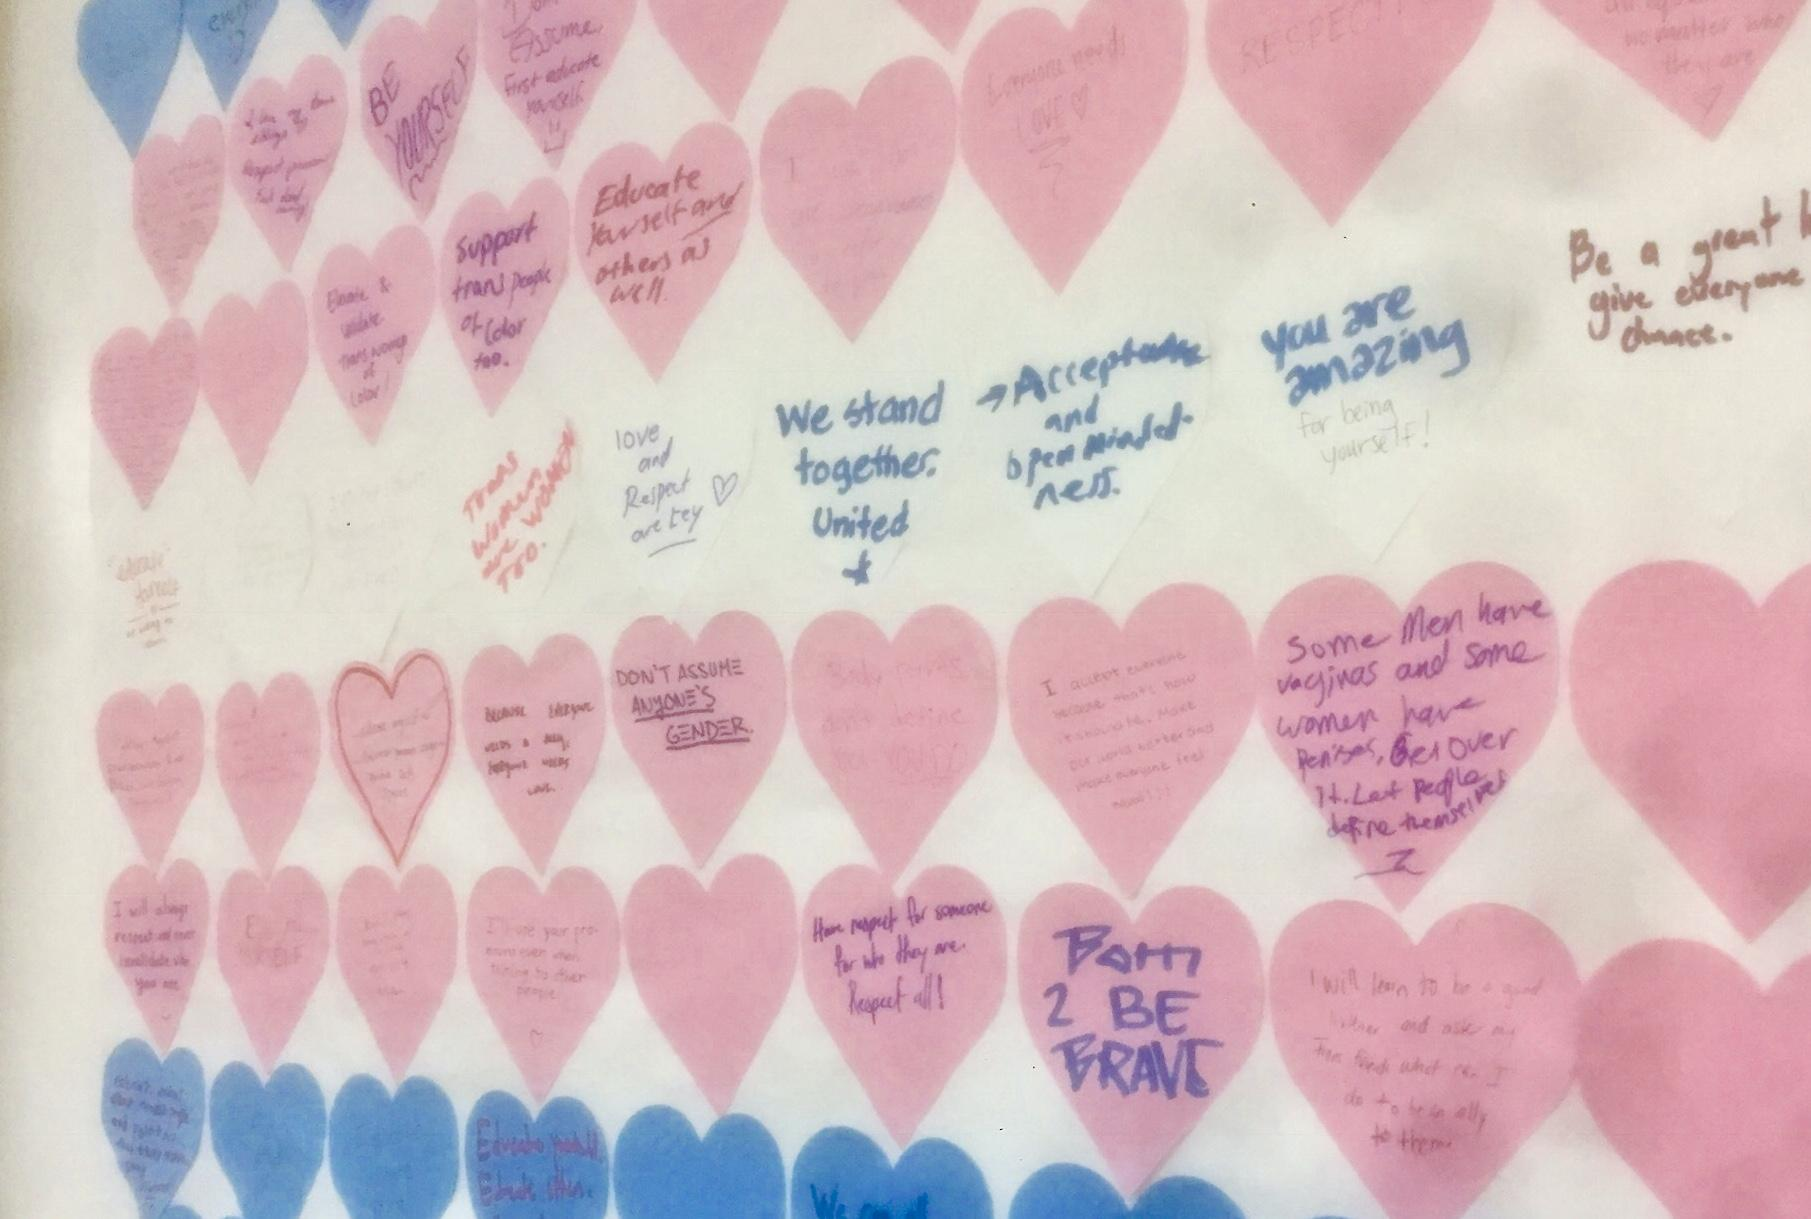 Heart-notes pictured with positive messages